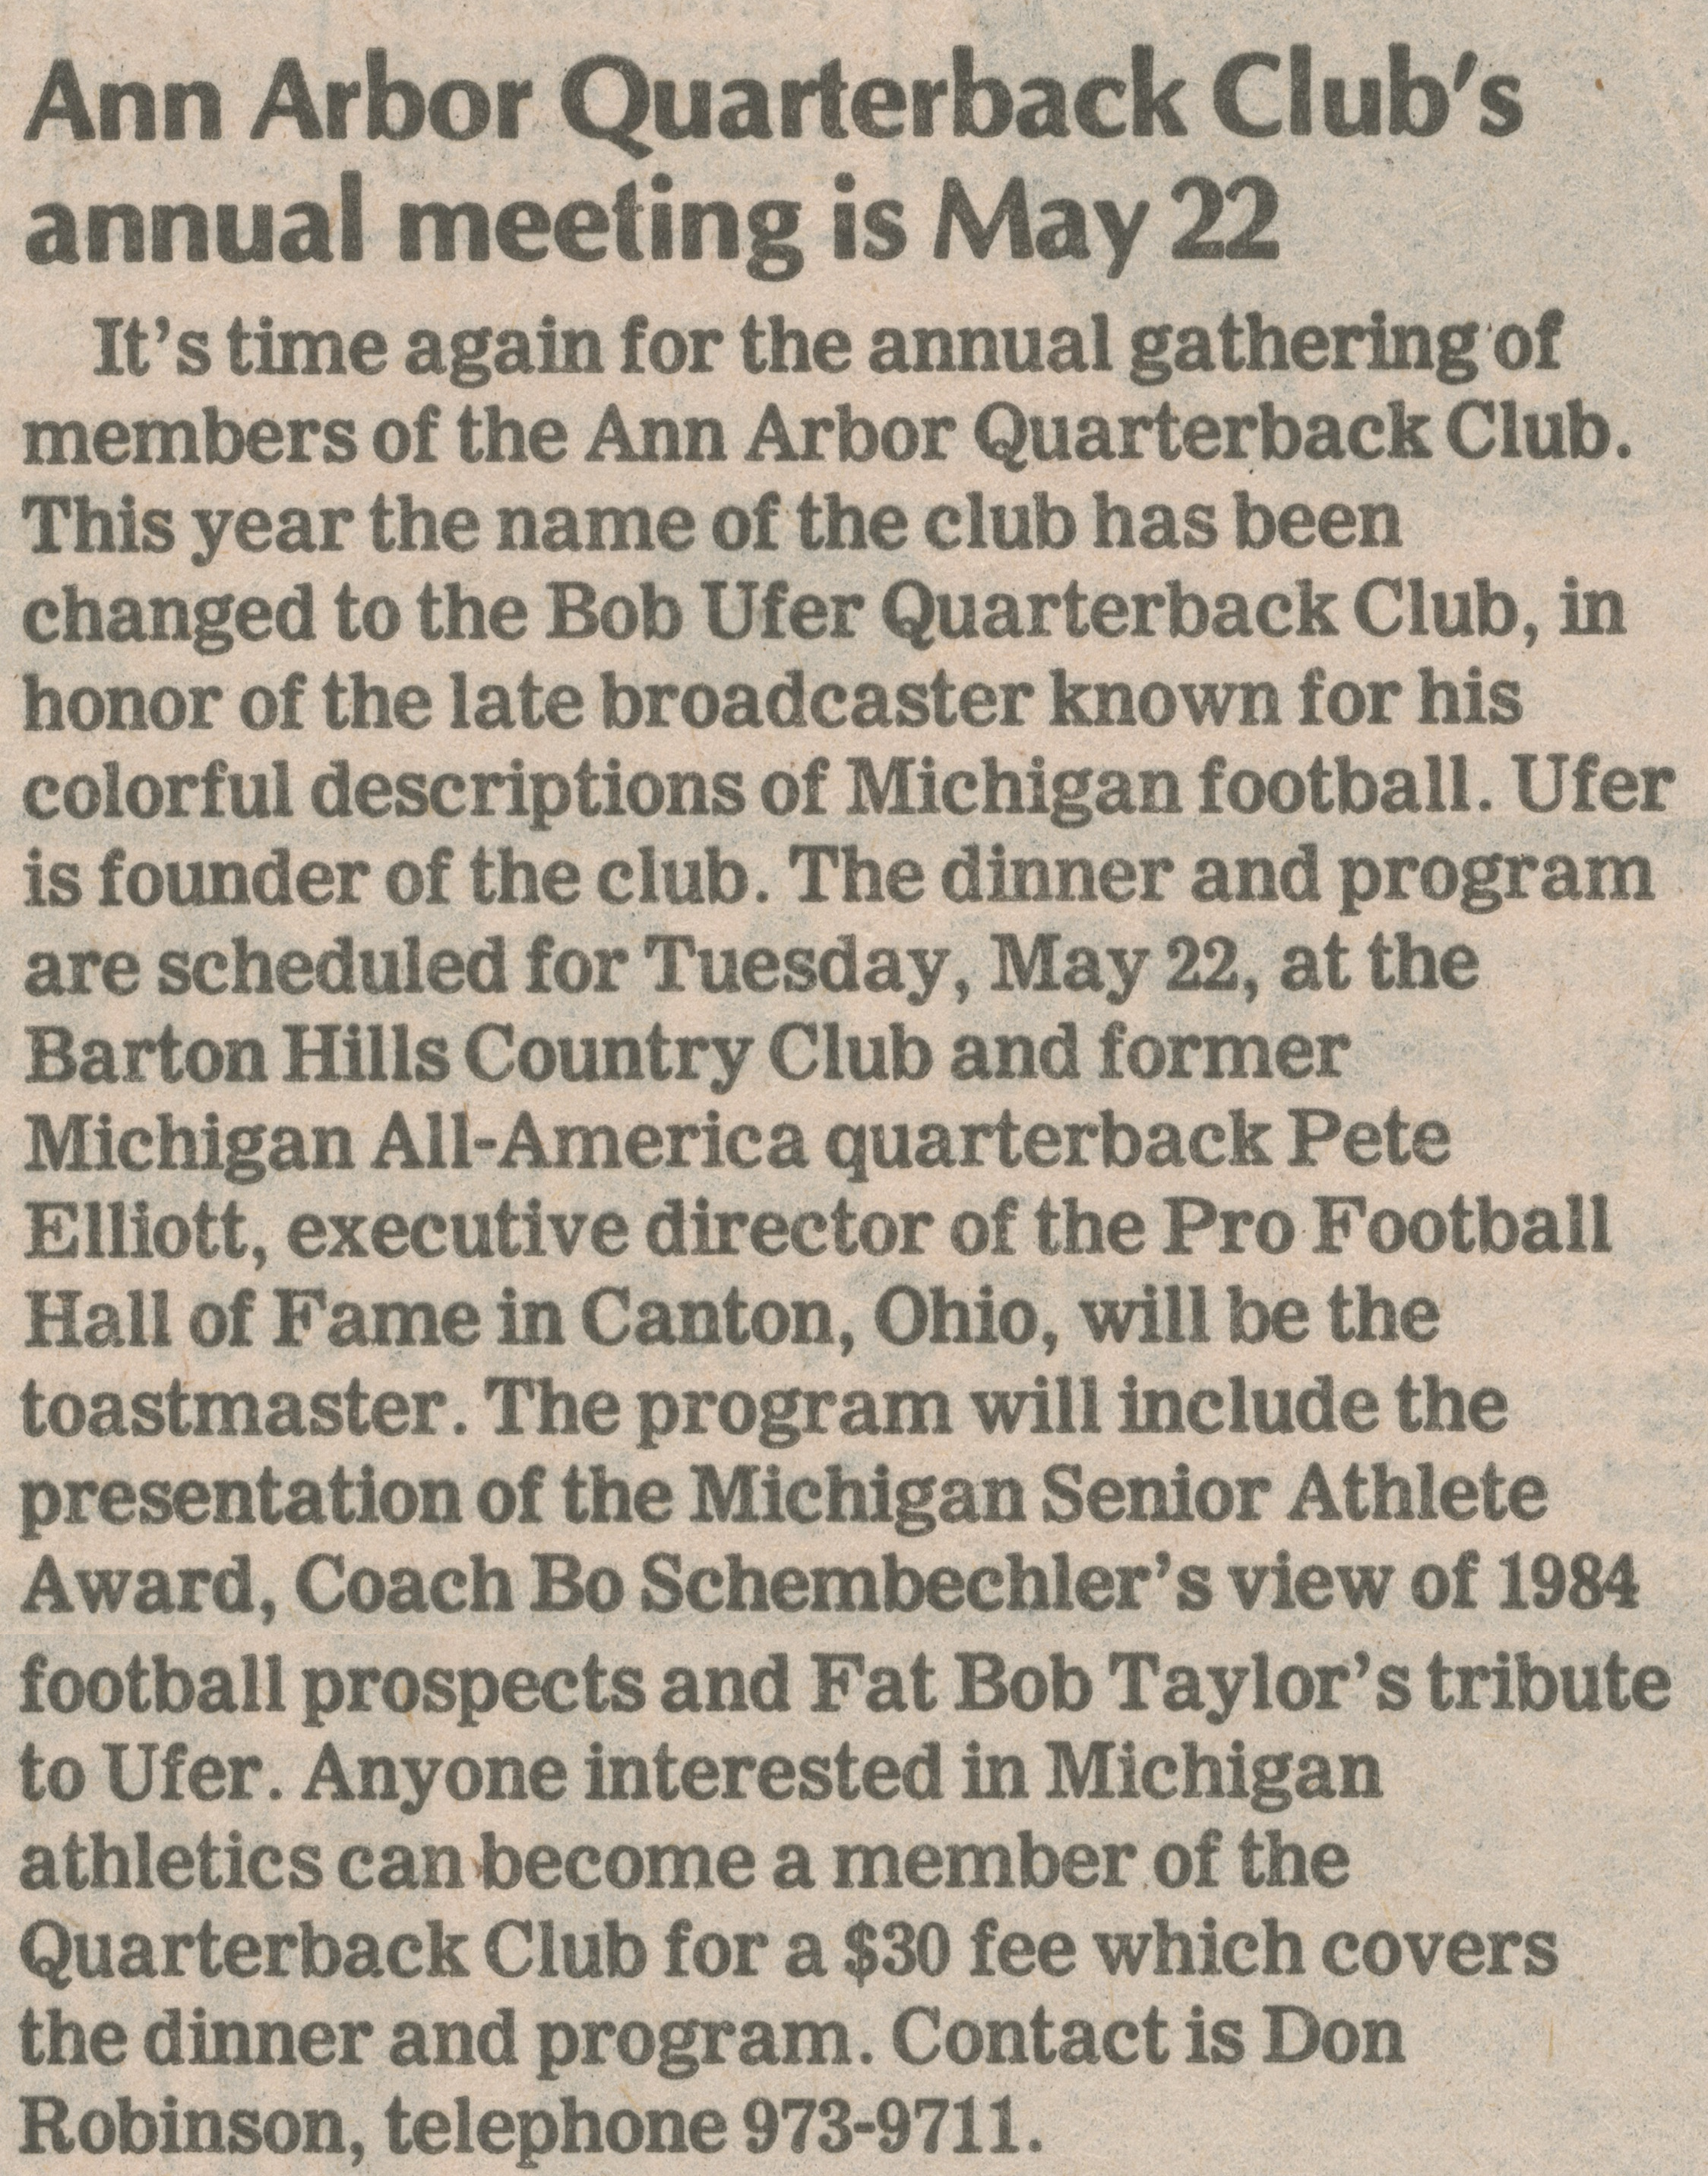 Ann Arbor Quarterback Club's Annual Meeting Is May 22 image